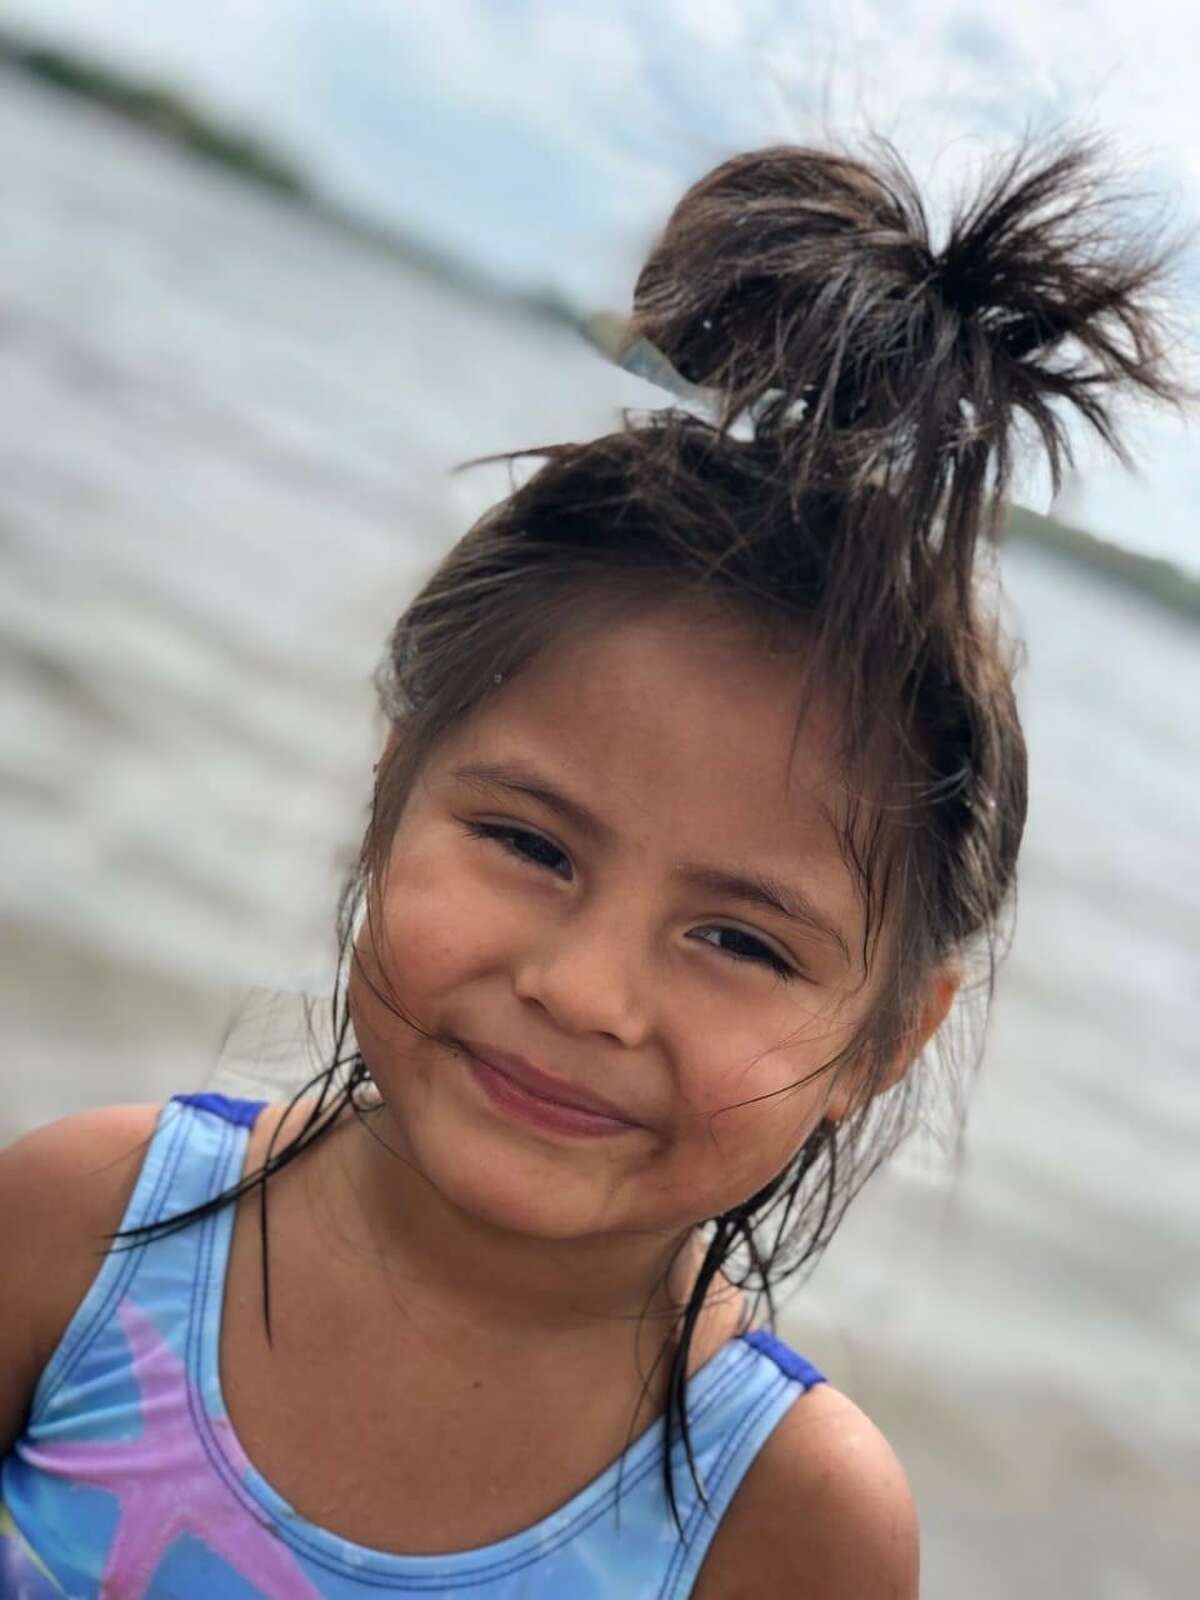 Border Patrol agents separated 4-year-old Briana from her father in March 2019 after apprehending them near Roma. They imprisoned her father for crossing illegally,sending the child to a federal shelter in Michigan. It took a month before they were able to find each other and speak by phone. She is part of more than 700 migrant children removed from their parents or other relatives since a June 2018 federal court injunction constrained the practice.